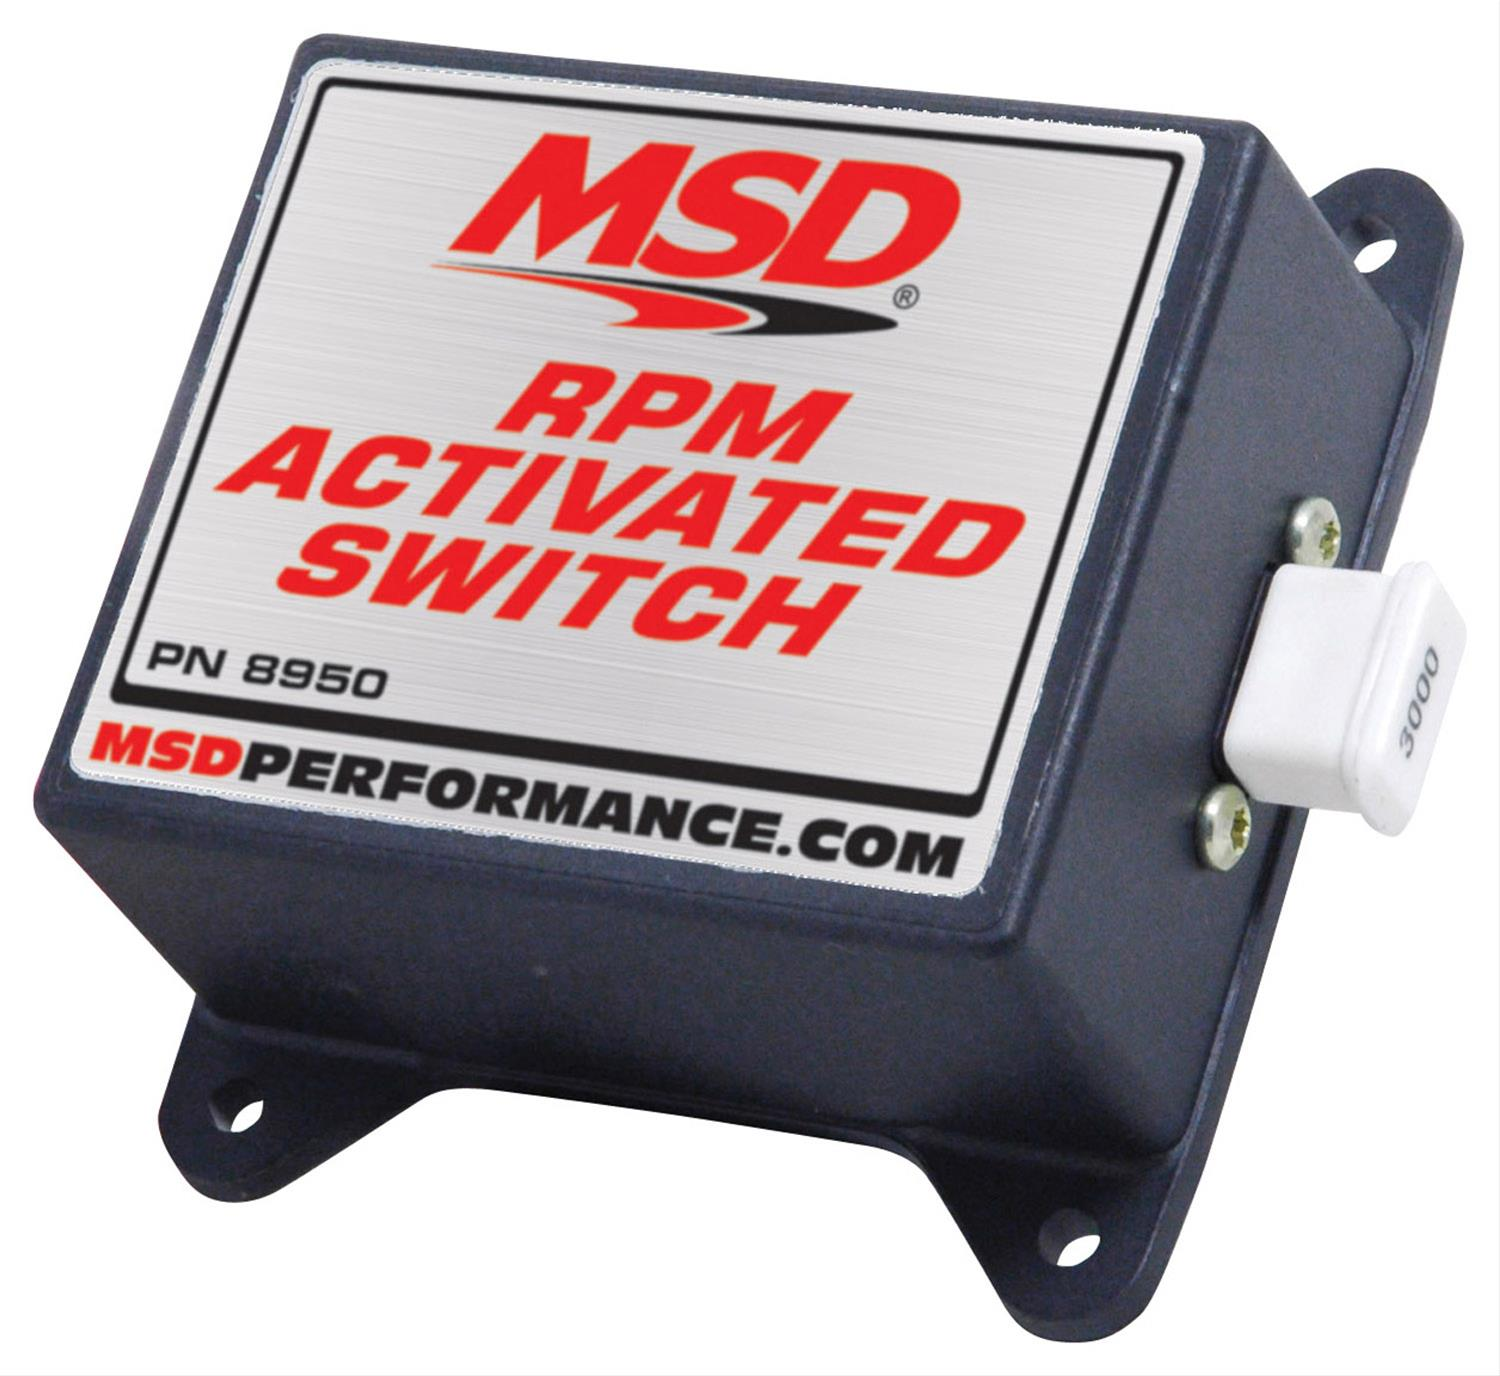 Wiring Diagram Msd 8950 Simple Options With Nitros Rpm Activated Switches Free Shipping On Orders Over 99 Two Stage Nitrous